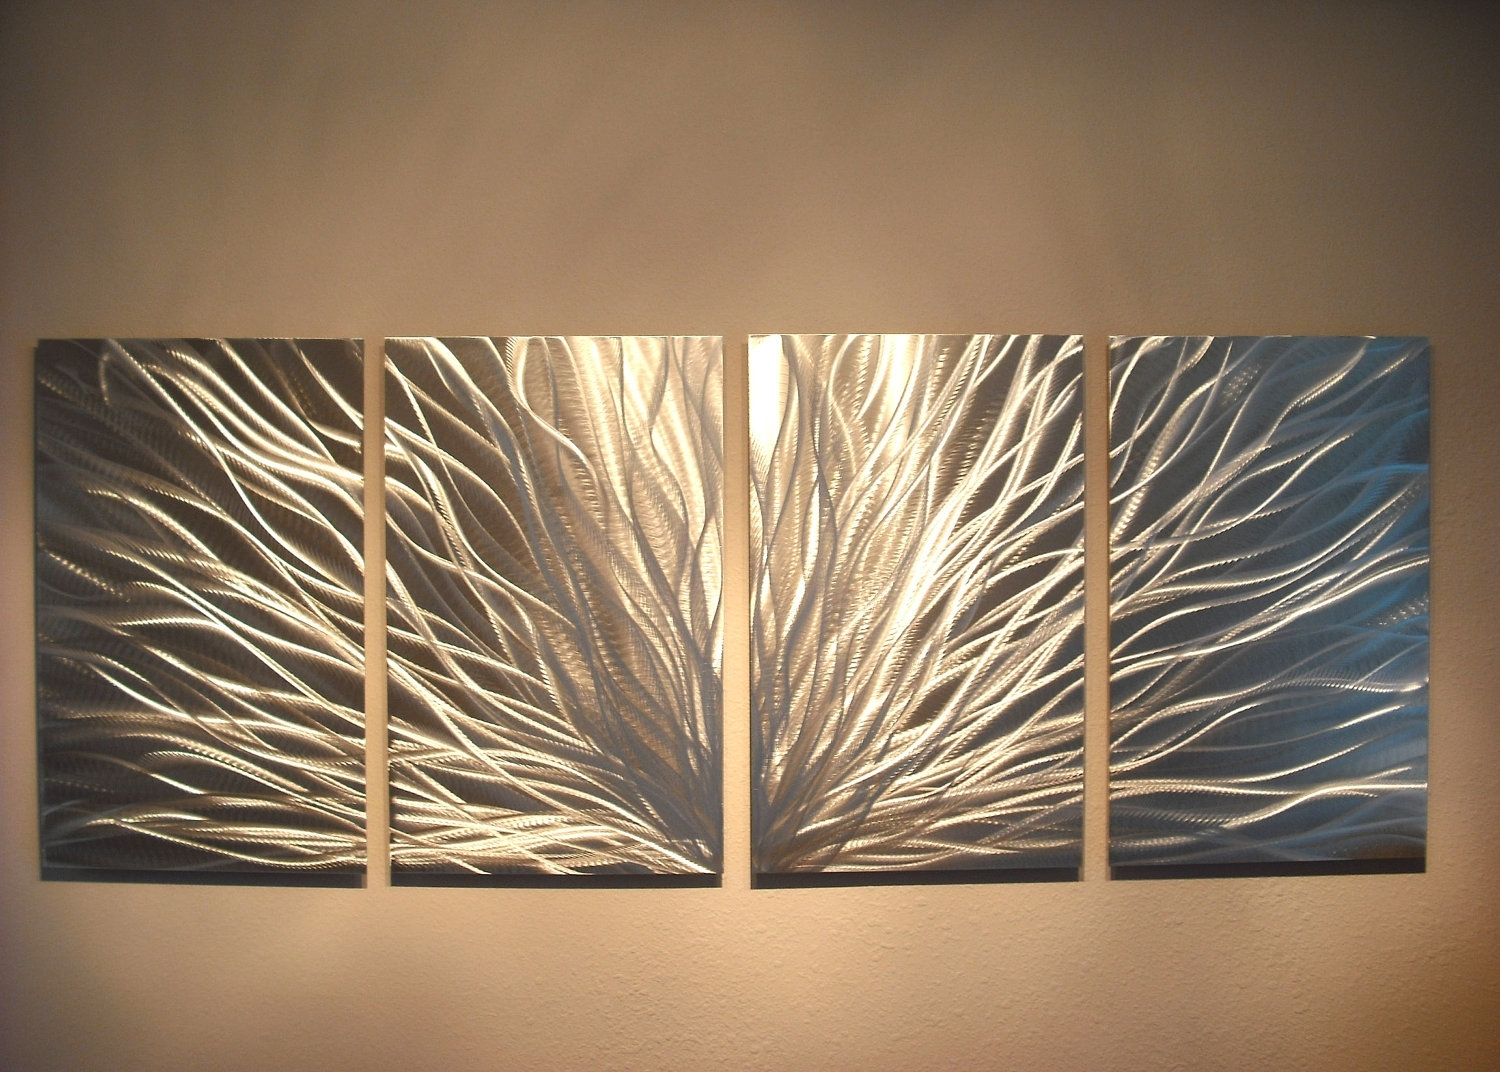 Radiance – Abstract Metal Wall Art Contemporary Modern Decor With Latest Abstract Iron Wall Art (View 7 of 20)